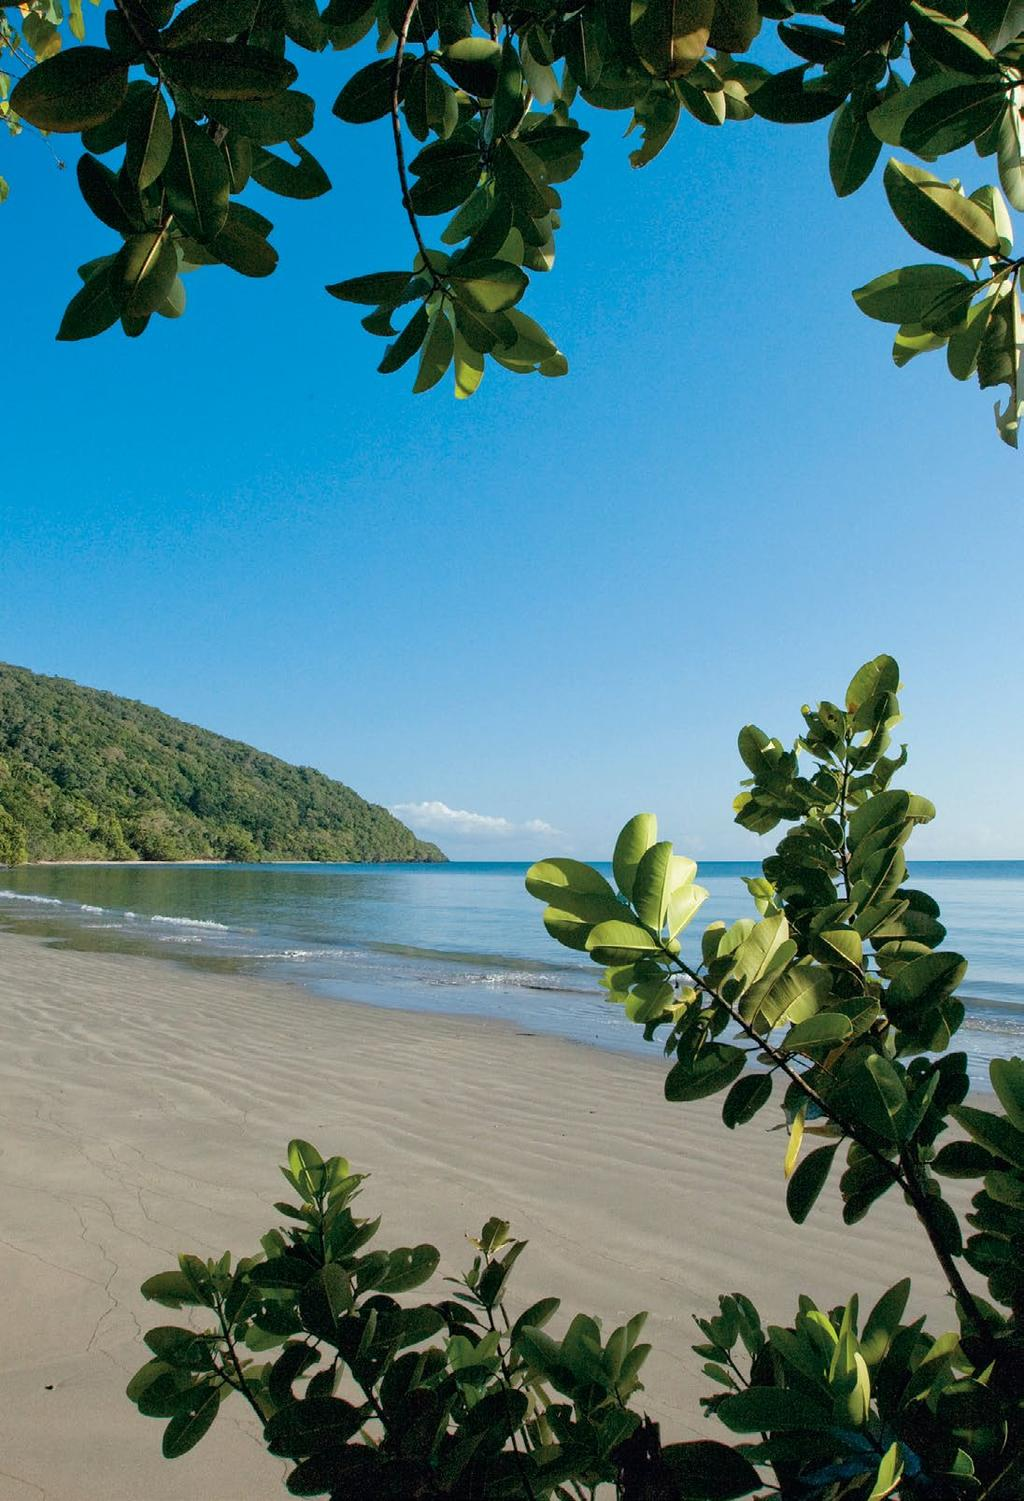 CAPE TRIBULATION YHA BUDGET GROUP ACCOMMODATION - 2018 Nestled deep within the Daintree Rainforest, Cape Tribulation YHA provides budget group accommodation at one of Australia s most famous beaches.